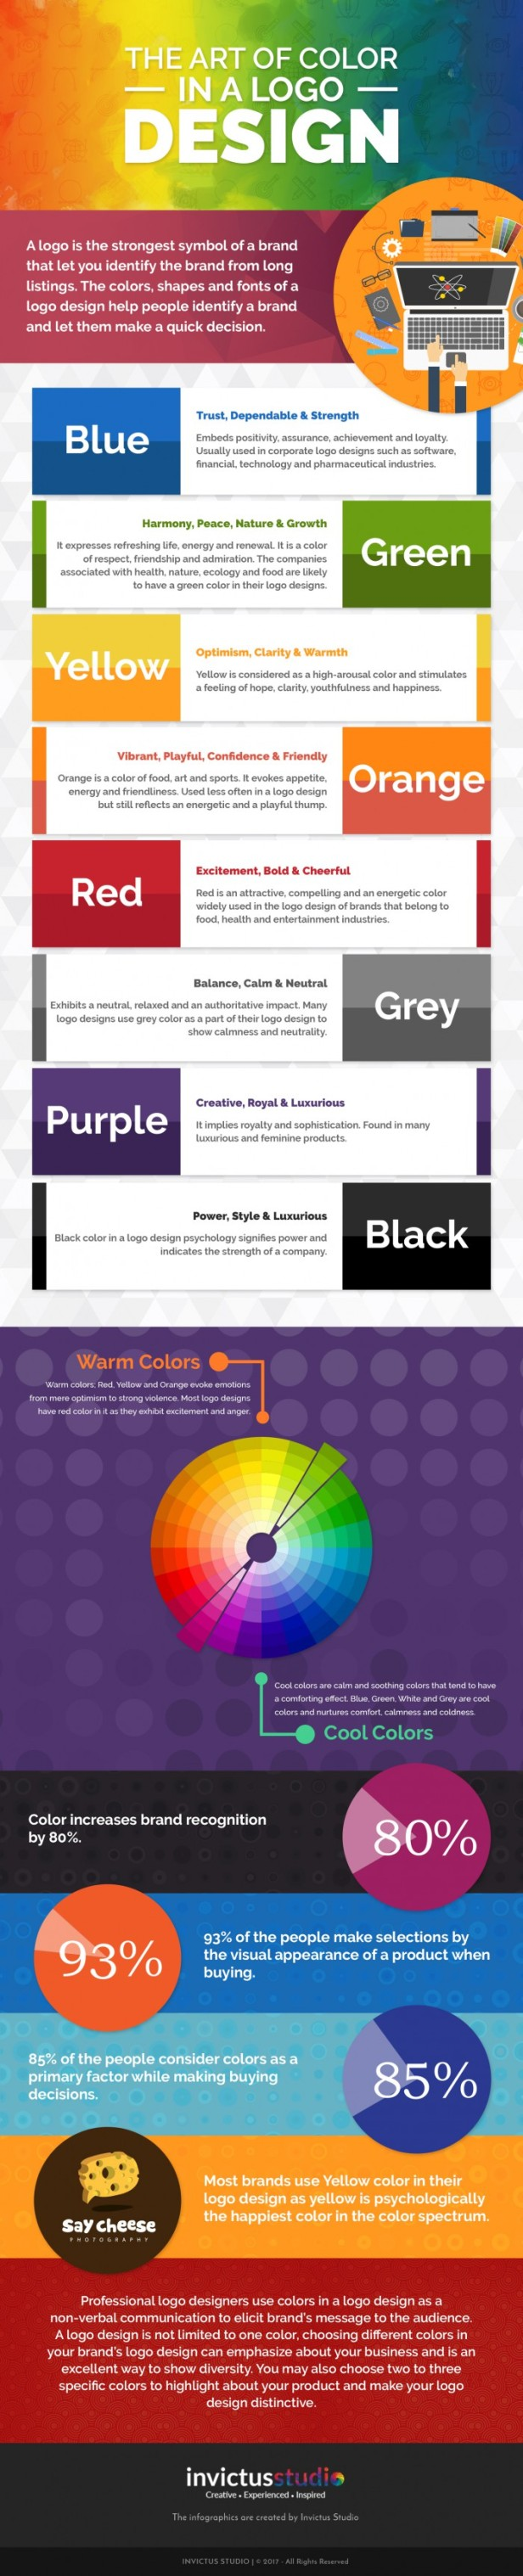 Logo colors meaning